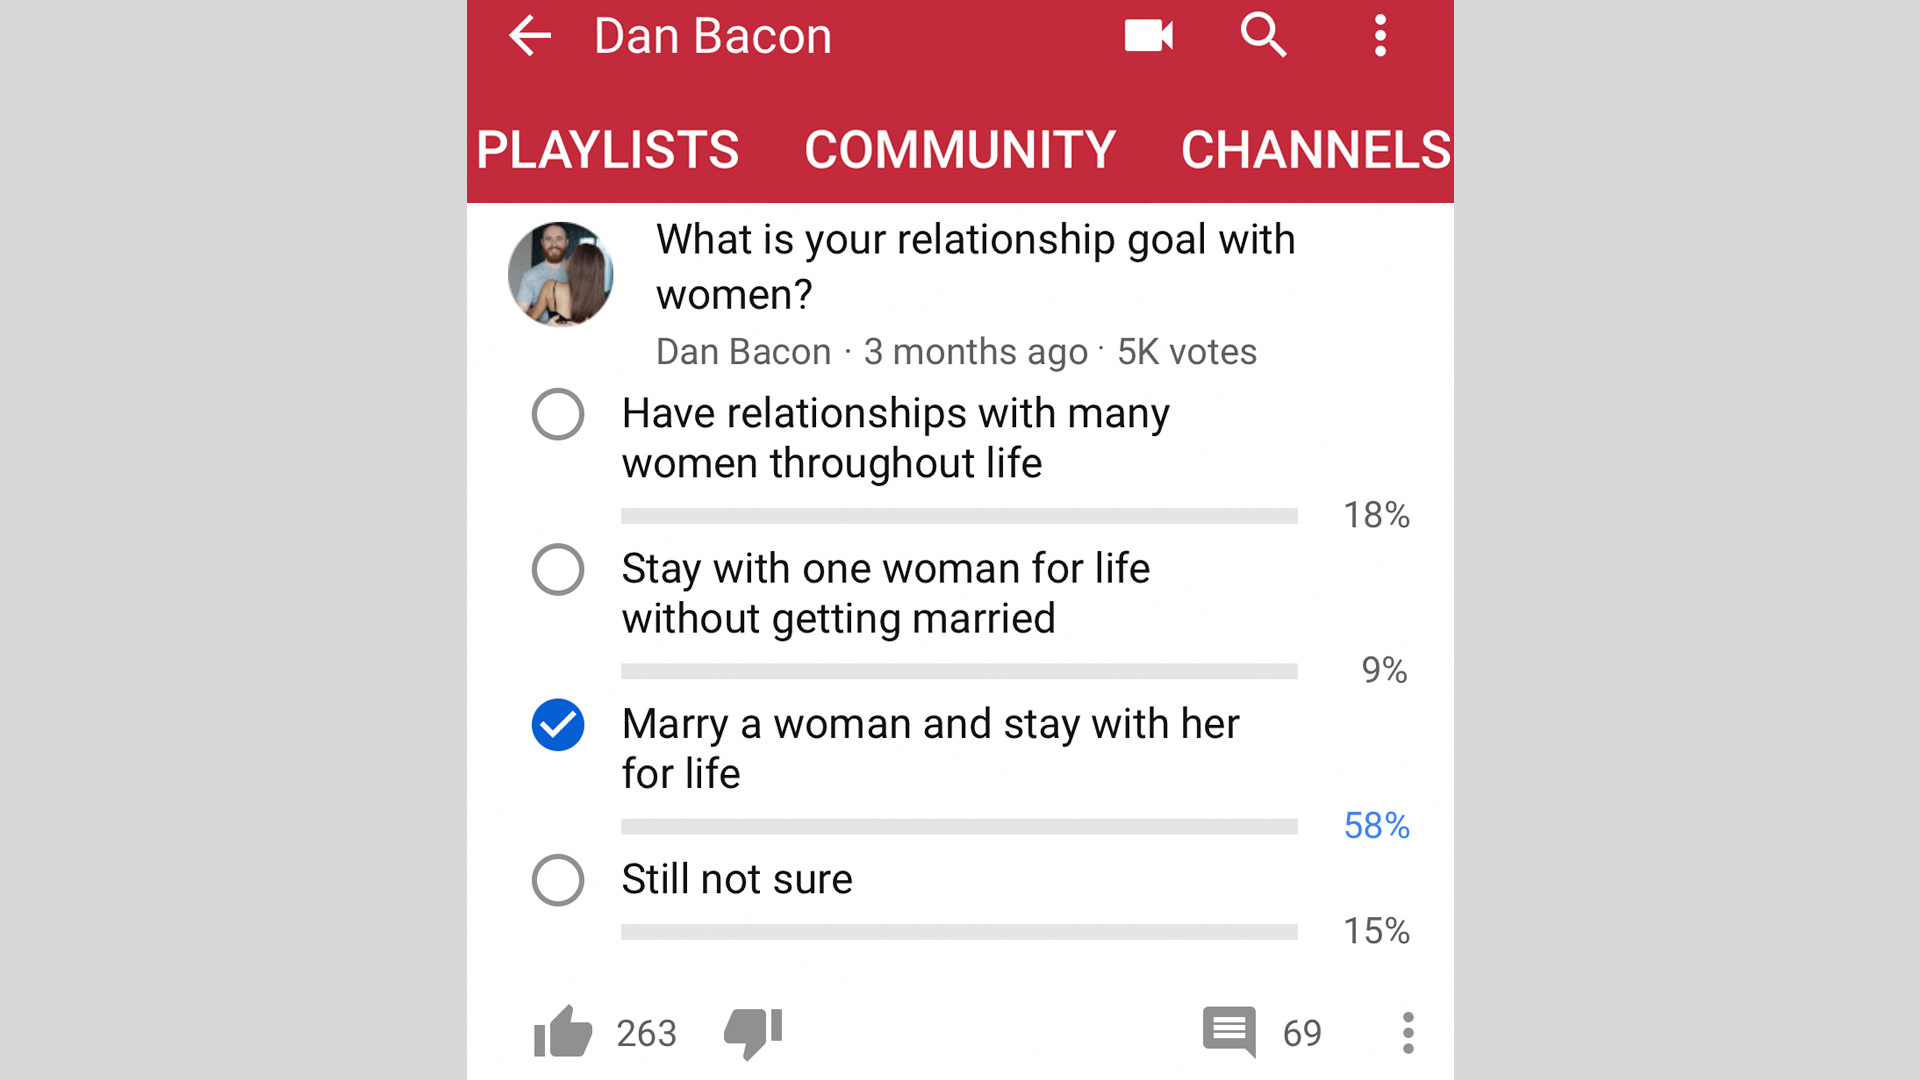 Relationship survey results: 58% of men want to marry a woman and stay with her for life